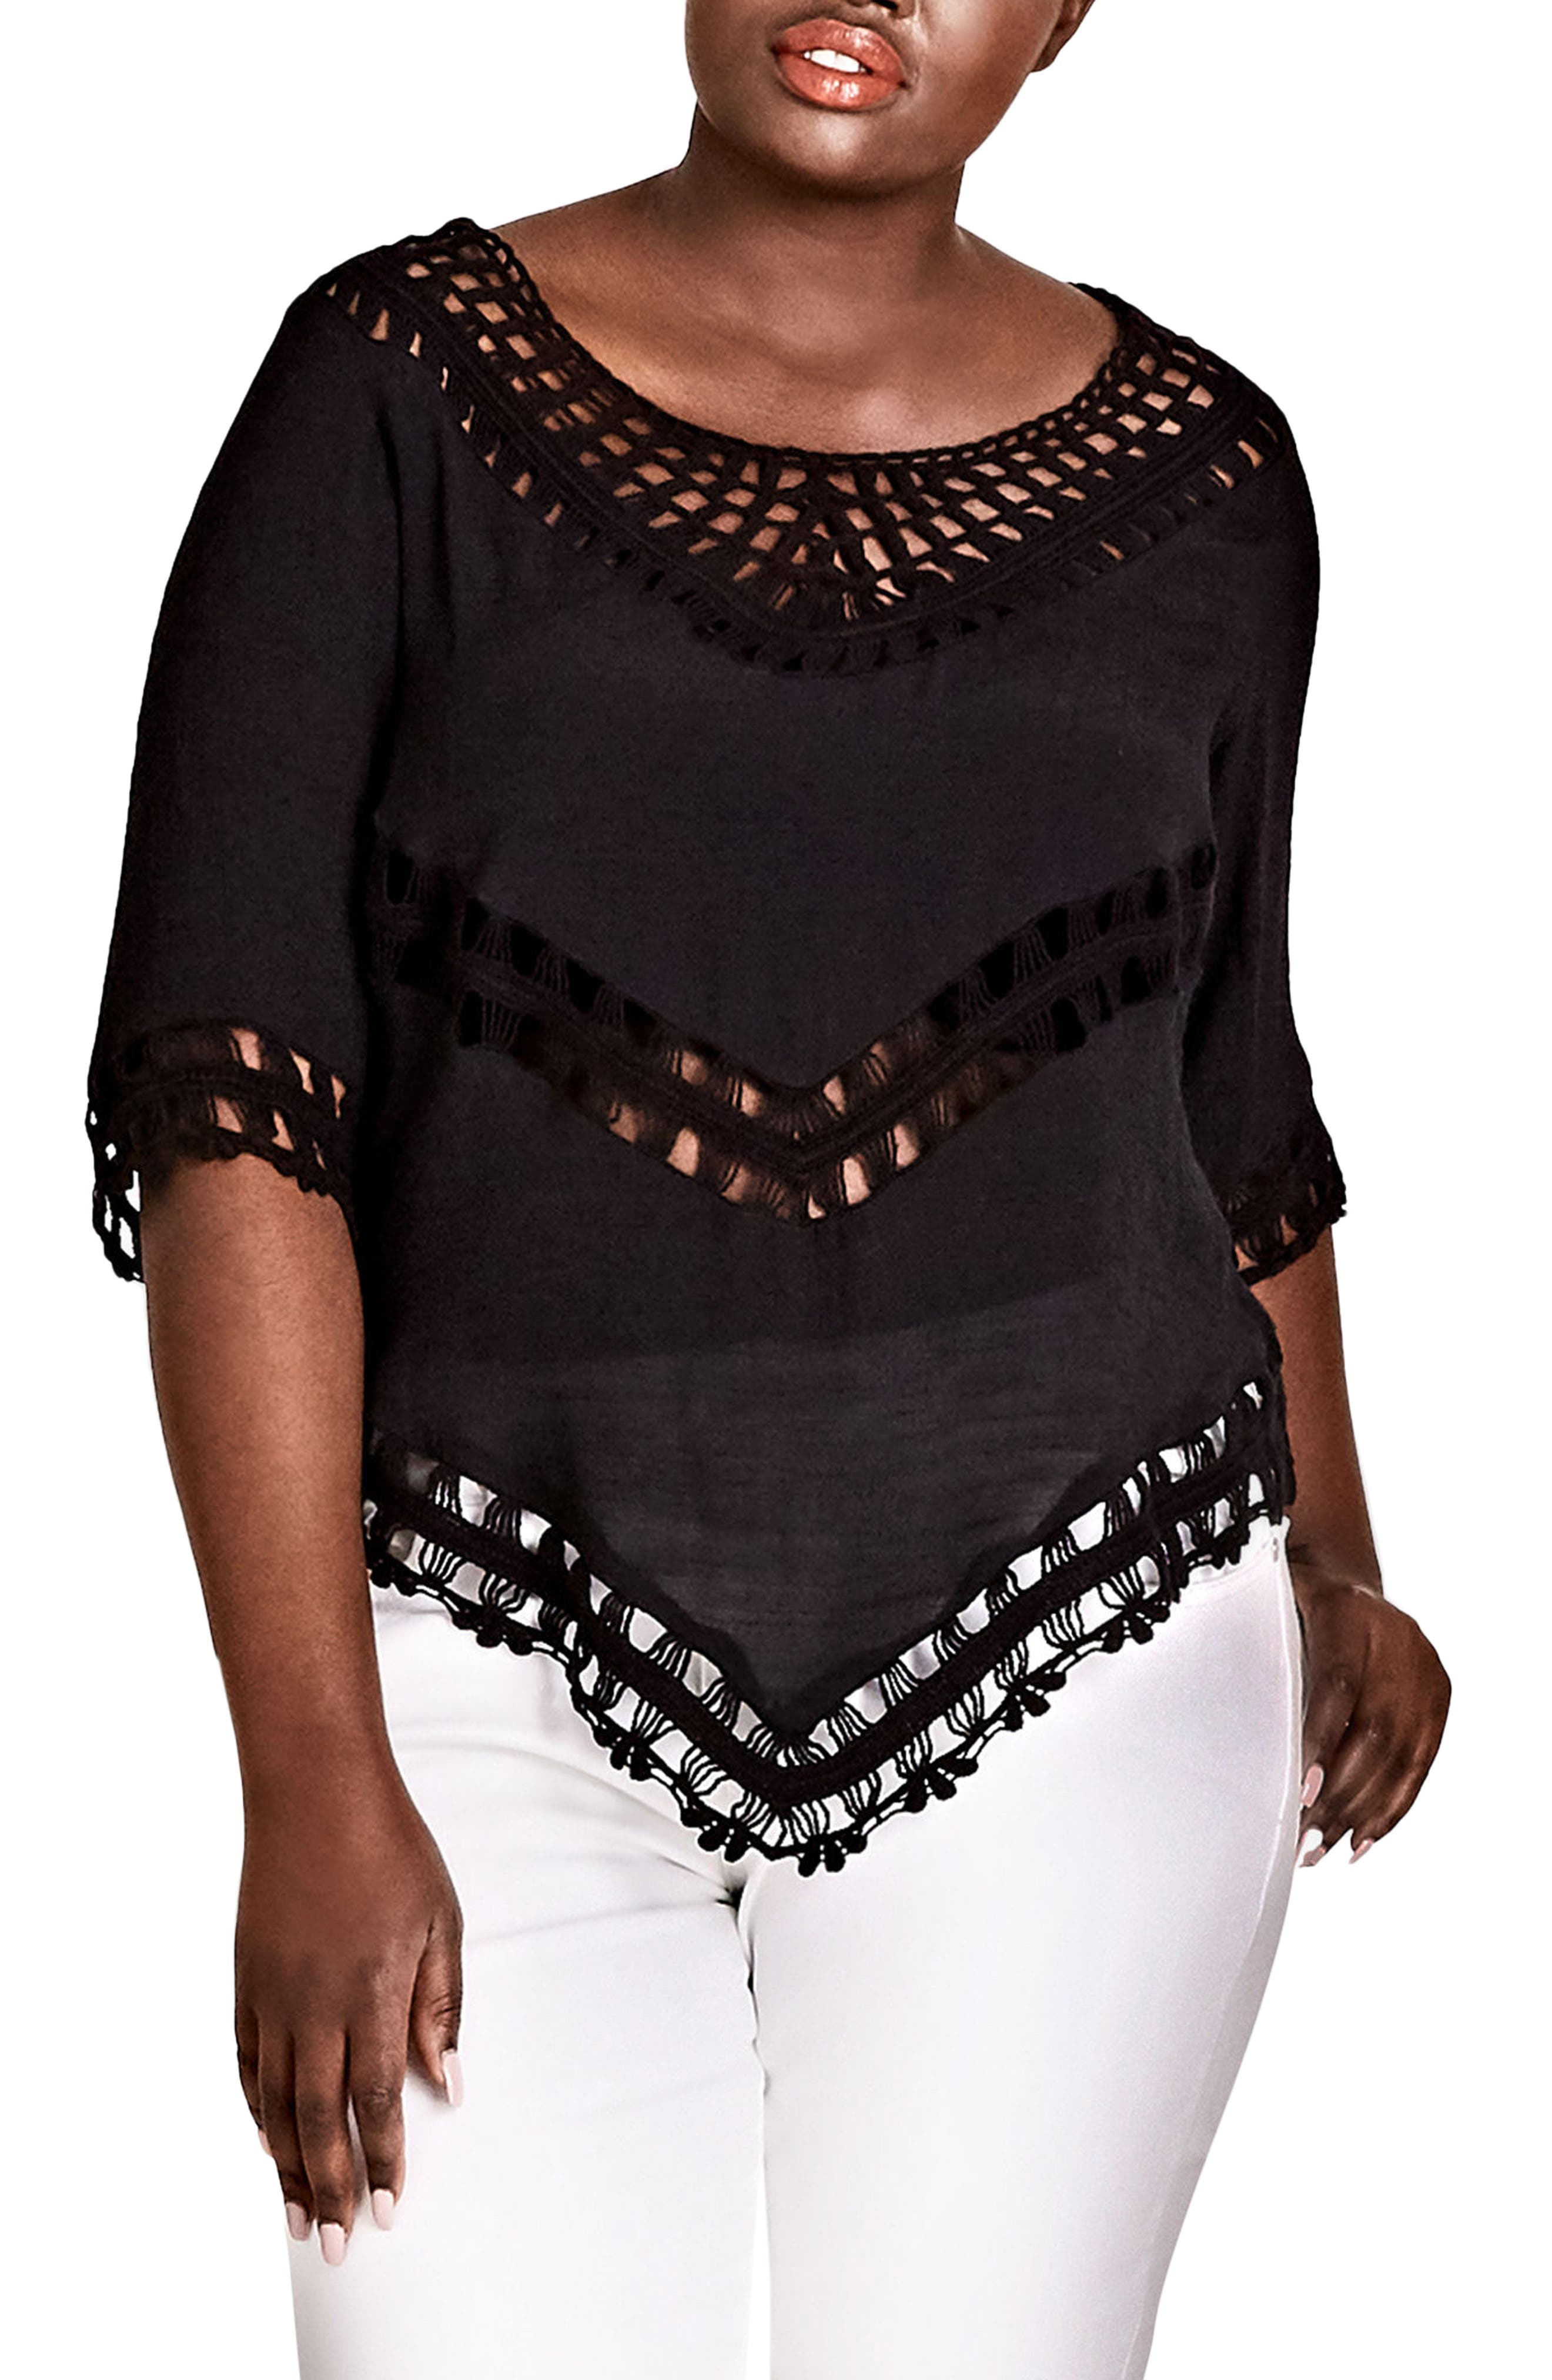 Sweet Vibe Crochet Top,                             Main thumbnail 1, color,                             BLACK